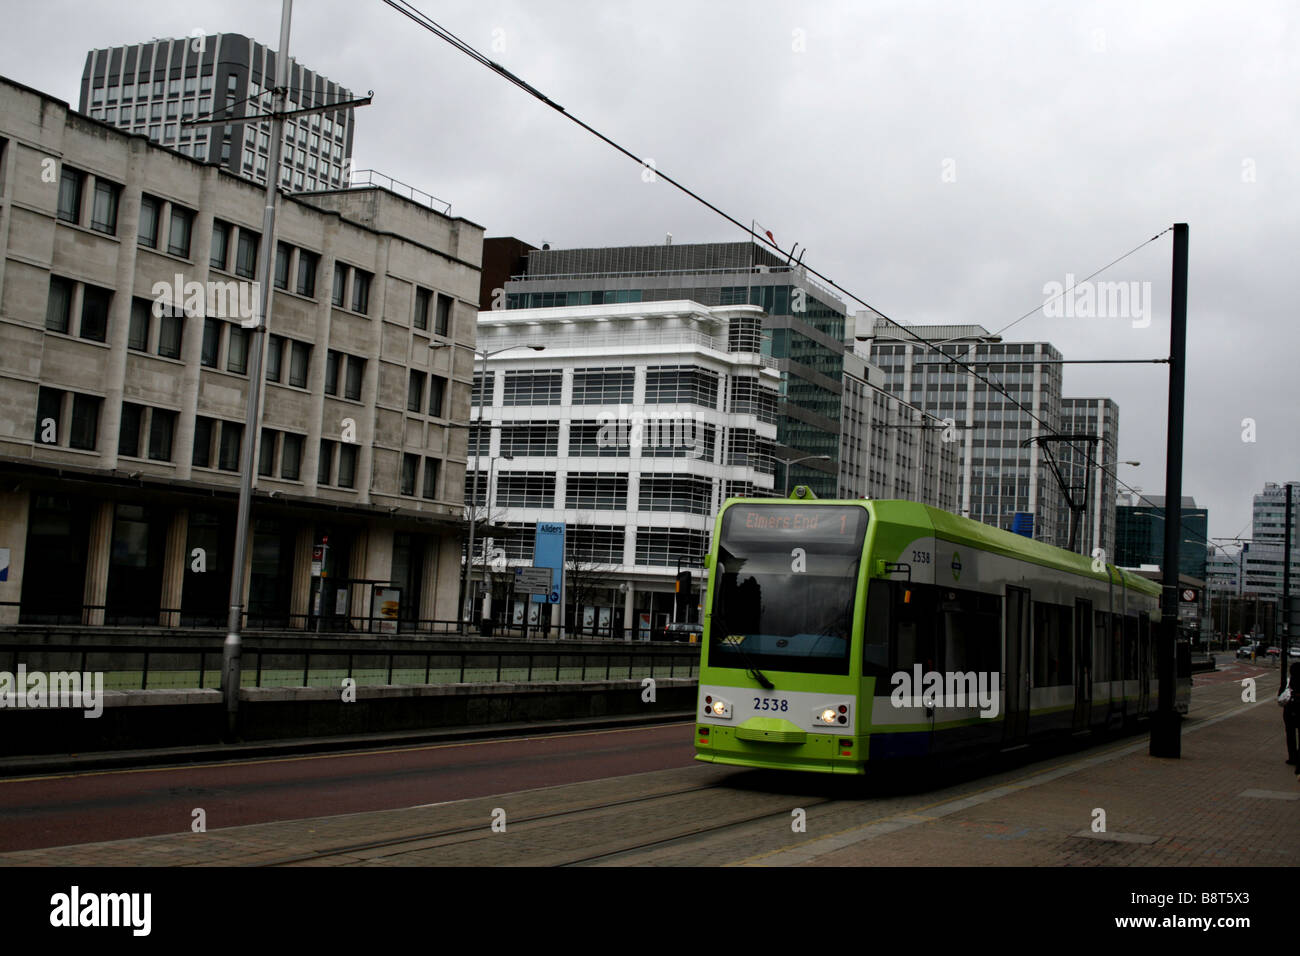 london borough of croydon surrey uk 2009 - Stock Image